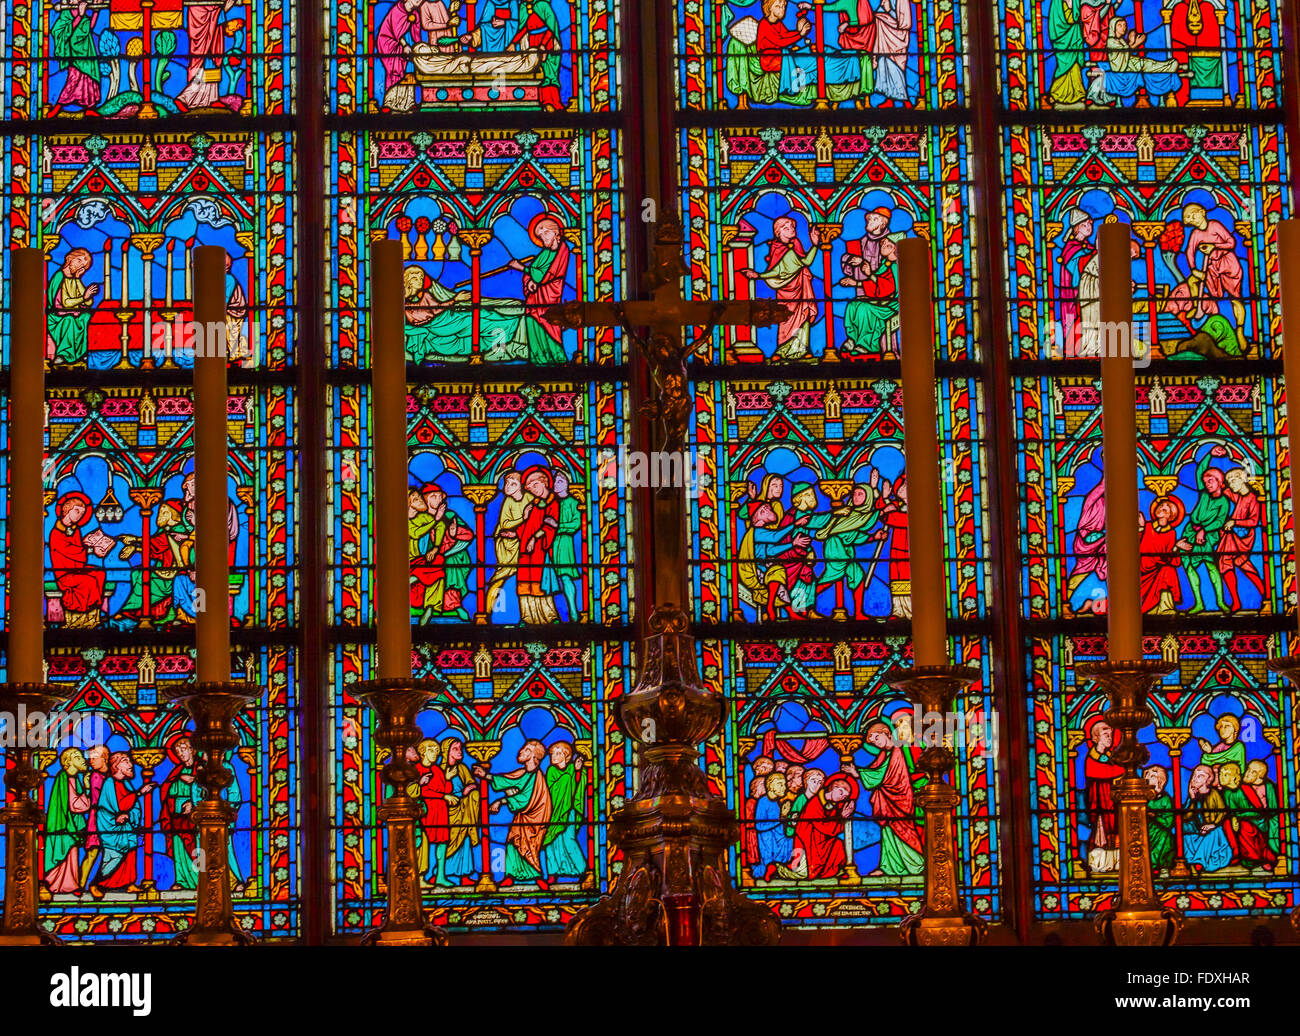 Altar Crucifix Middle Ages Stories Stained Glass Stained Glass Notre Dame Cathedral Paris France. - Stock Image